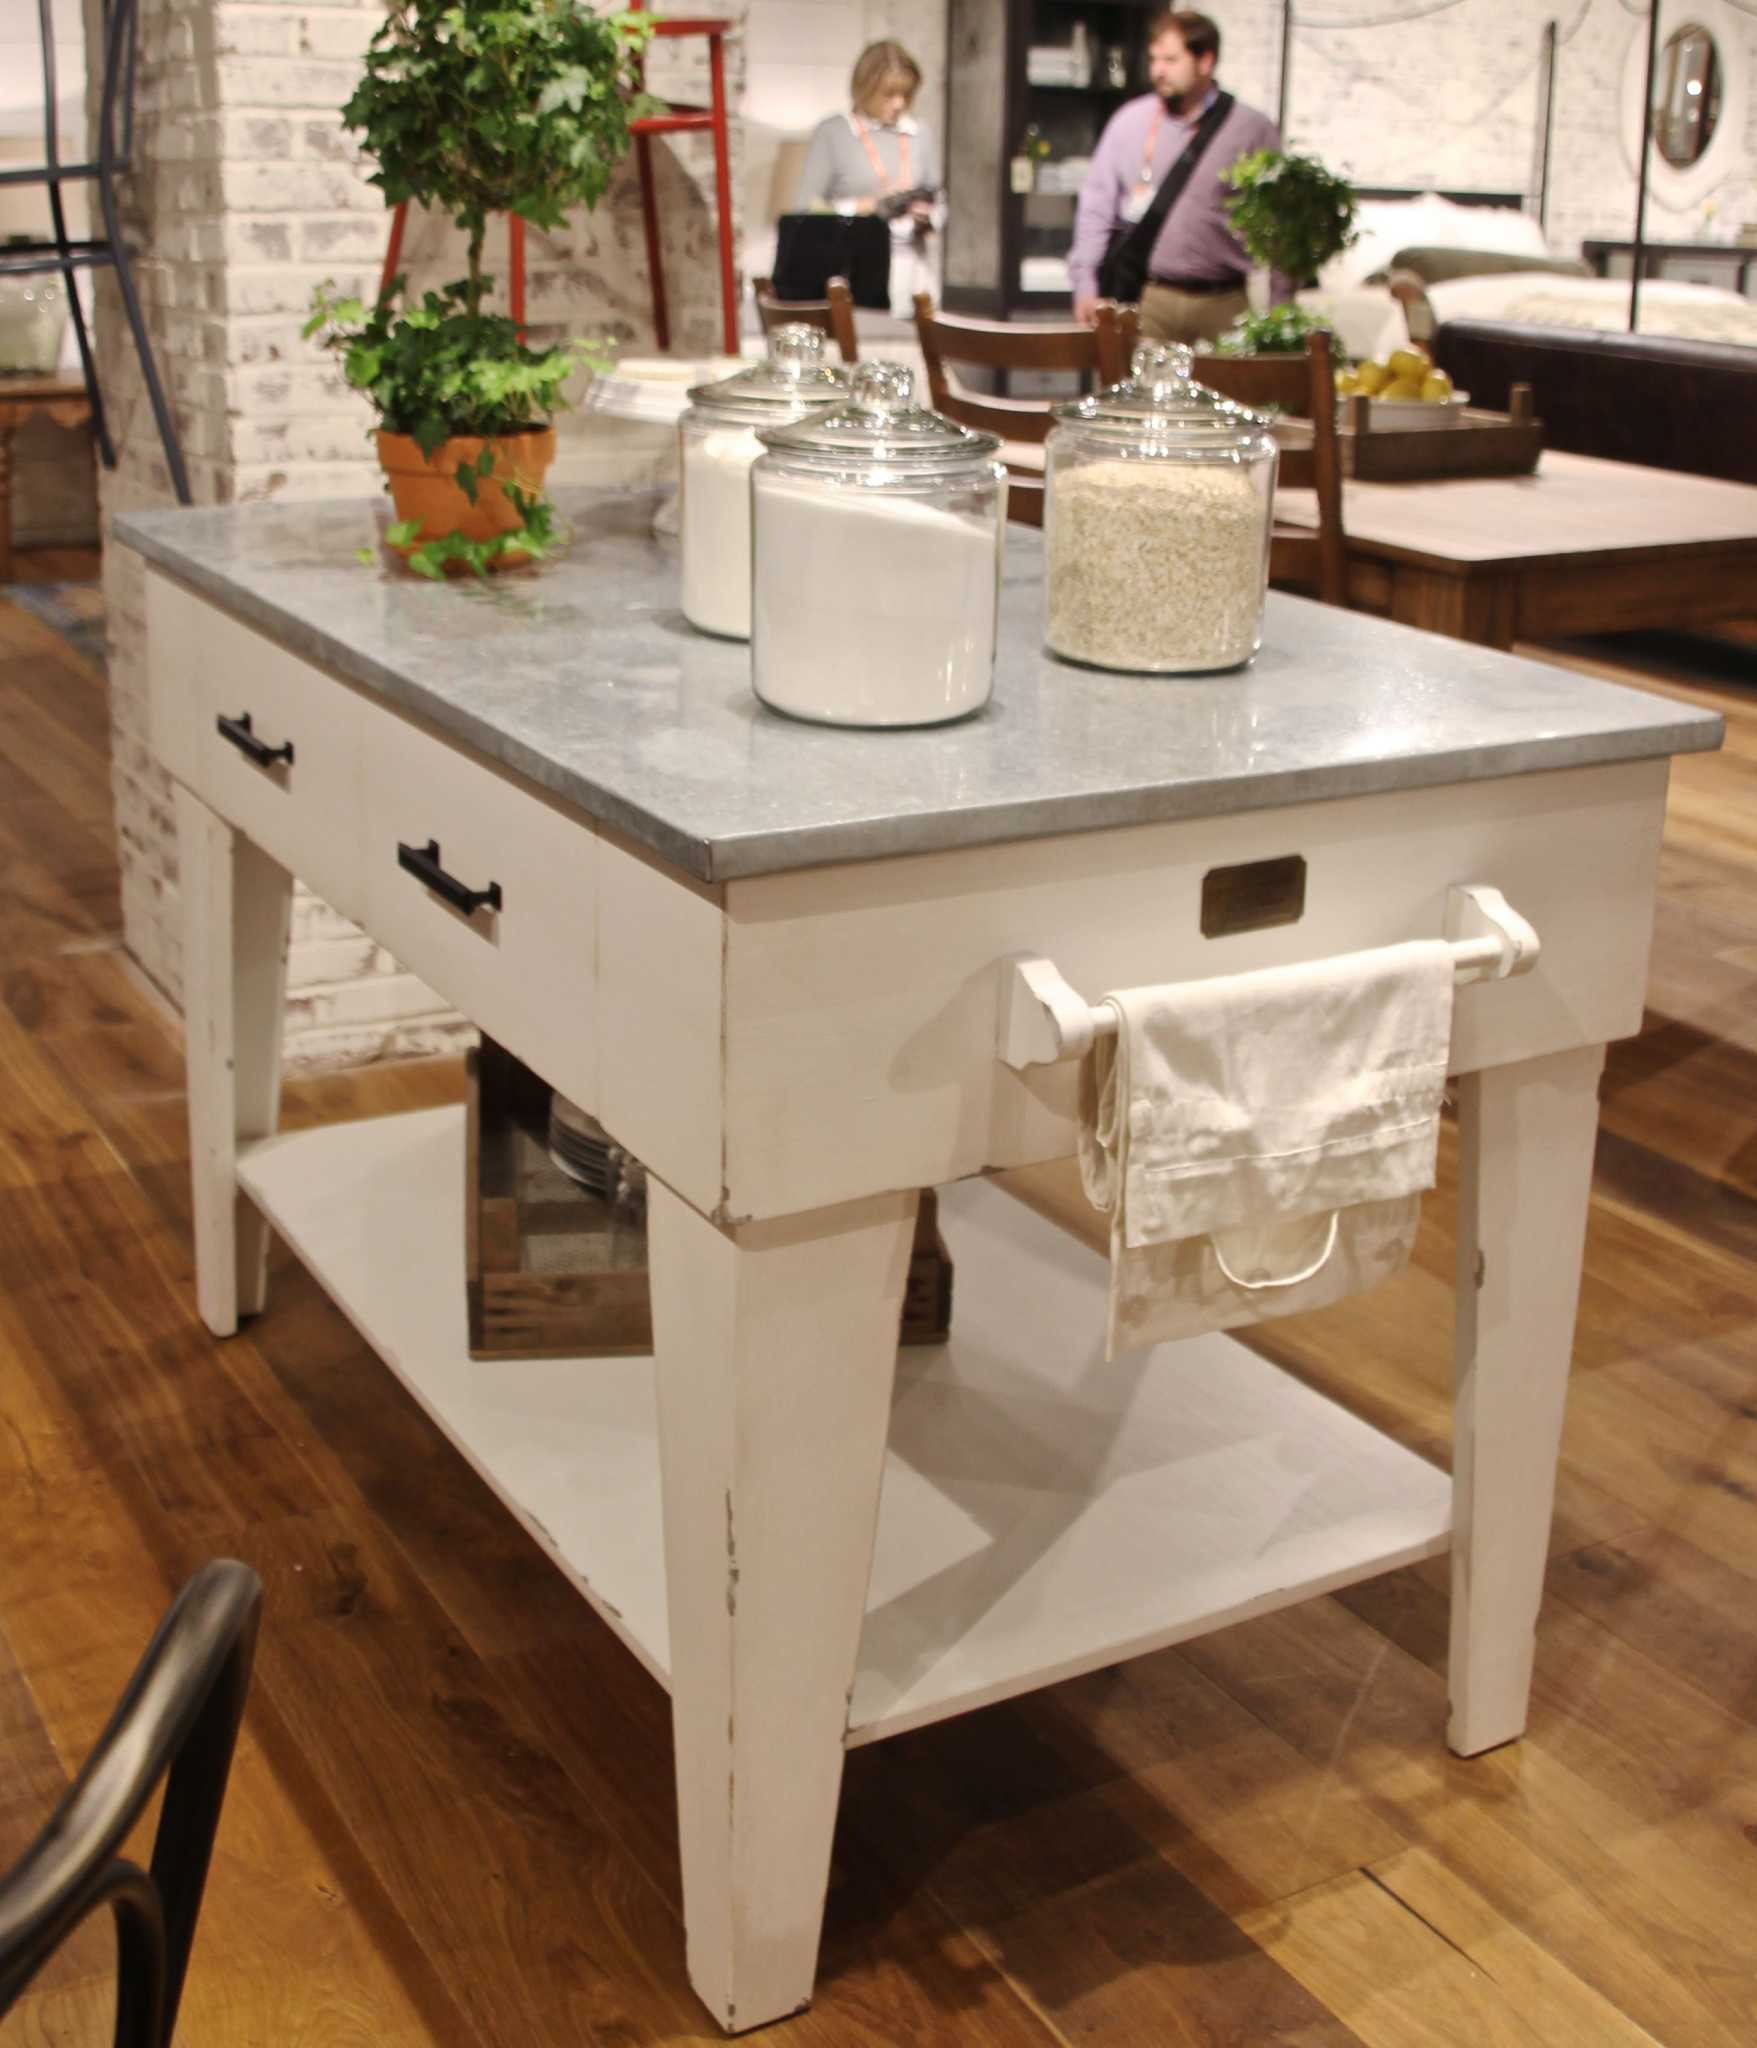 Hgtv s fixer upper host introduces furniture line san for Does the furniture stay on fixer upper